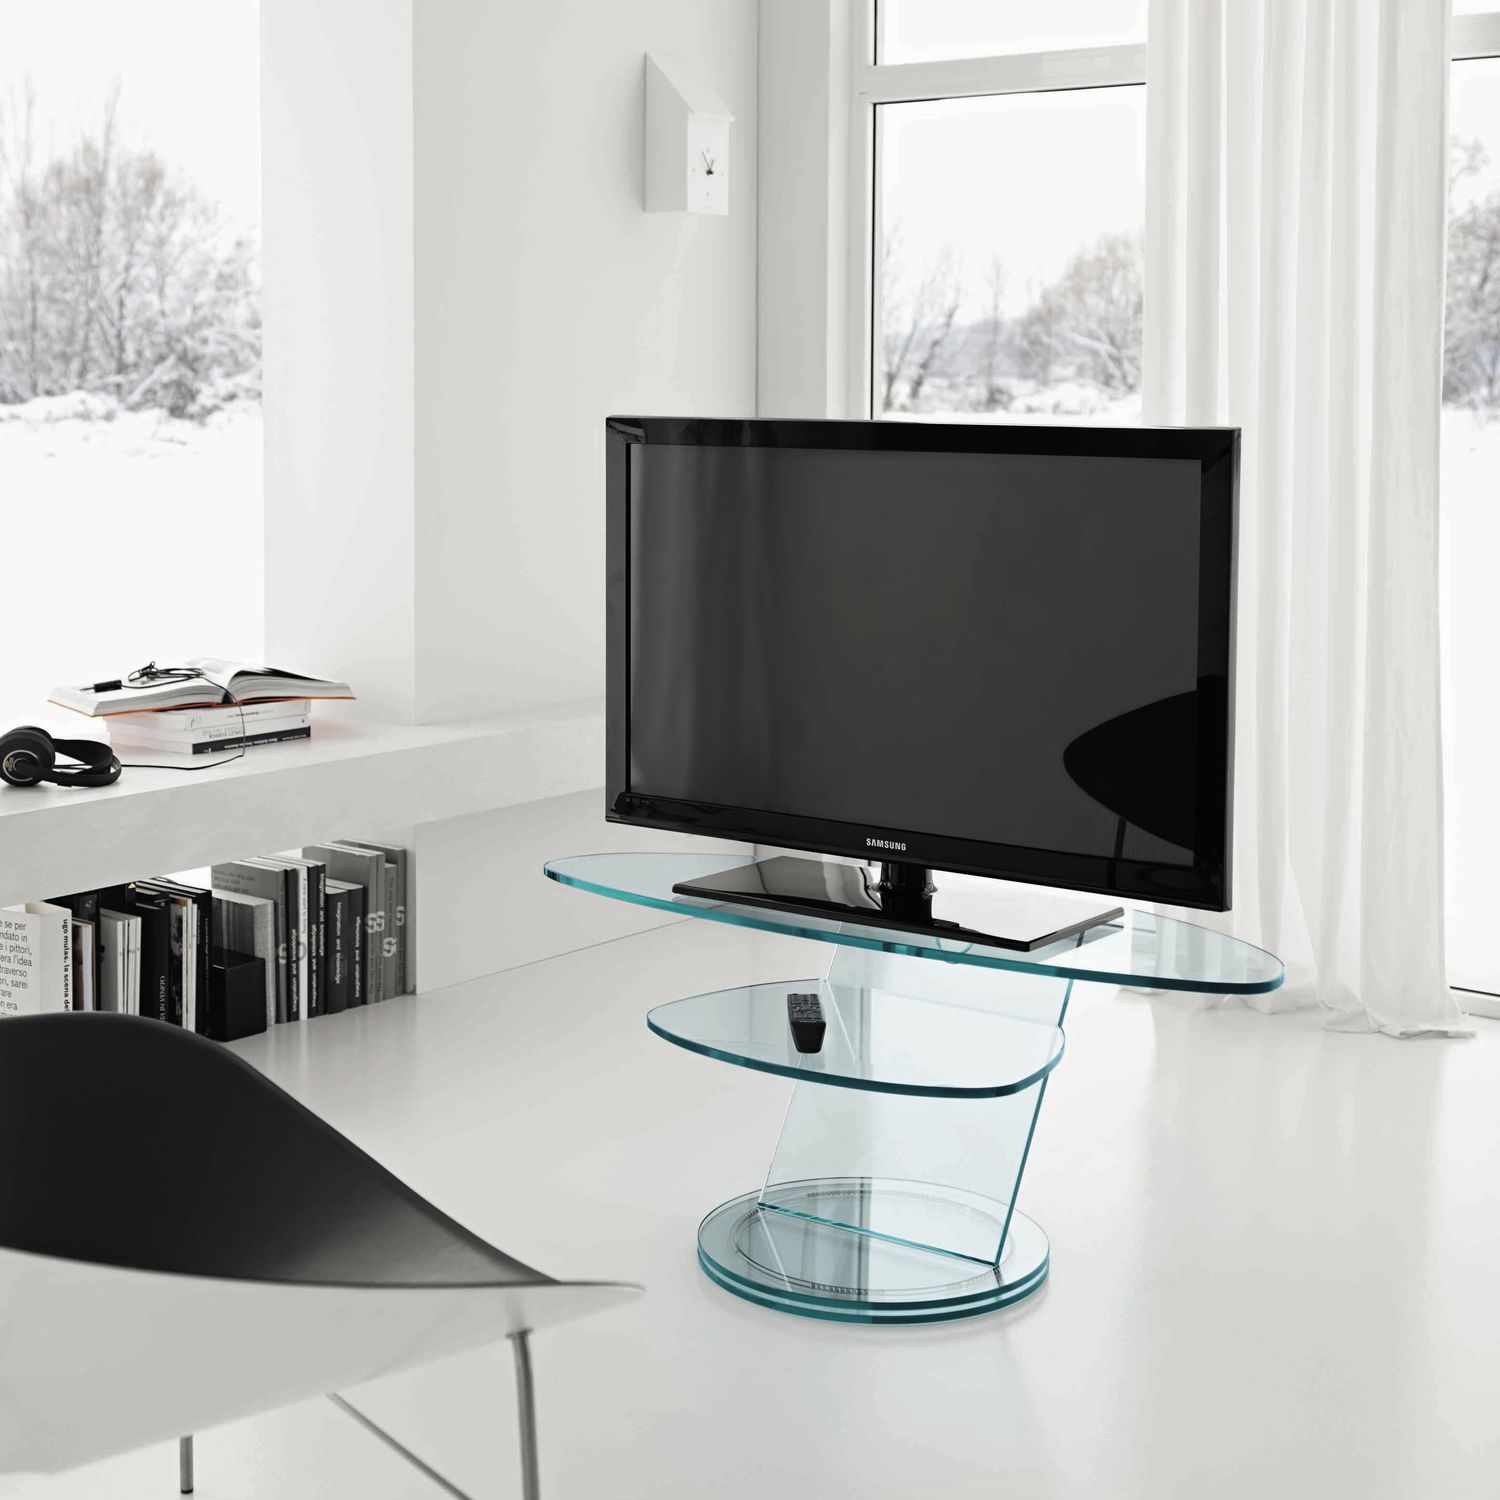 Design Porta Tv.Scenario By Isao Hosoe Contemporary Tv Cabinet Glass By Tonelli Design Archiexpo